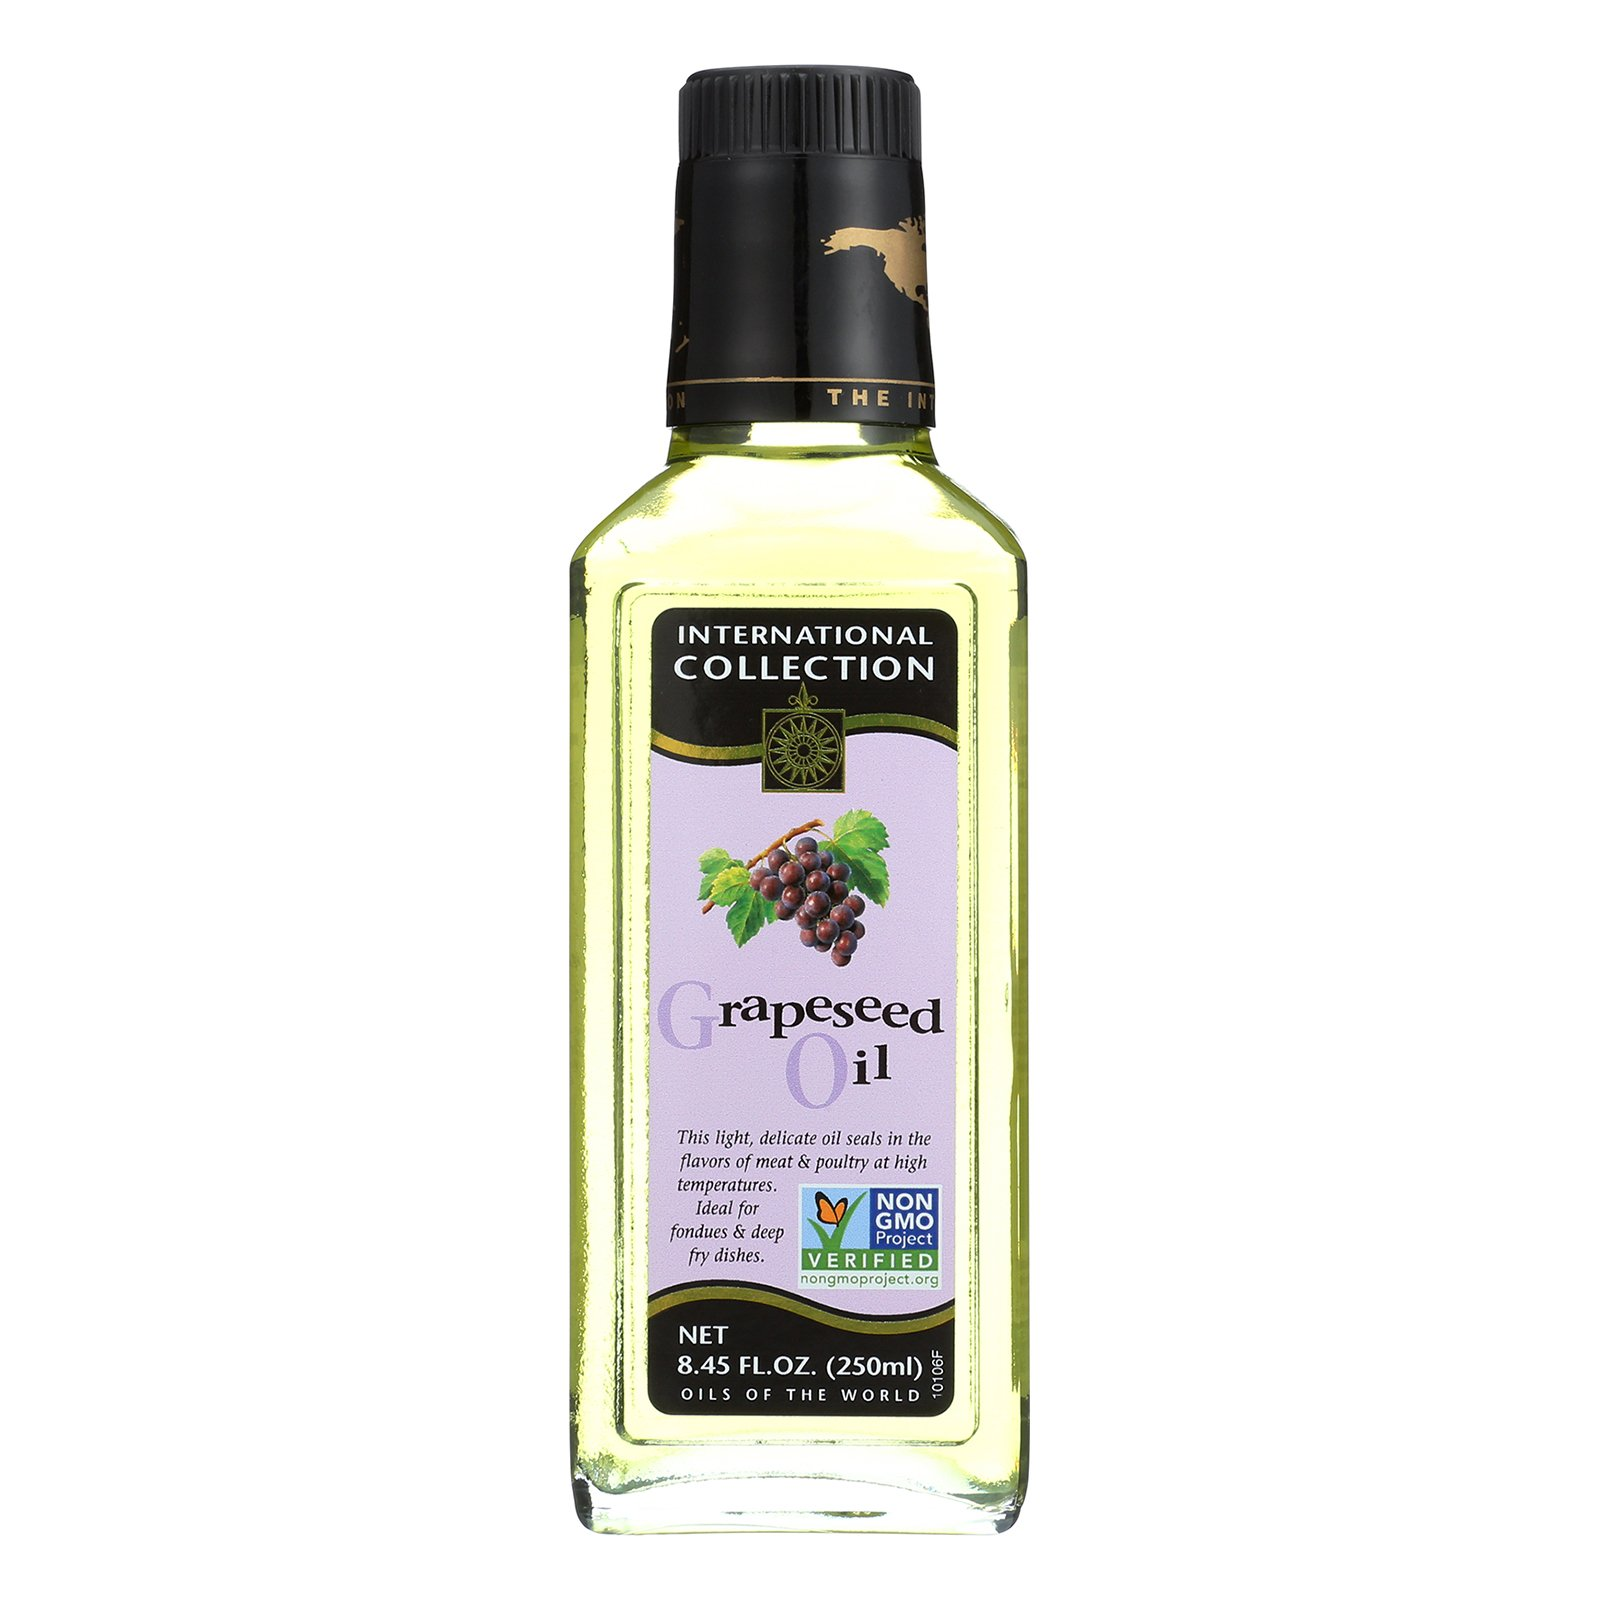 International Collection Grapeseed Oil - Case of 6 - 8.45 Fl oz. by International Collection